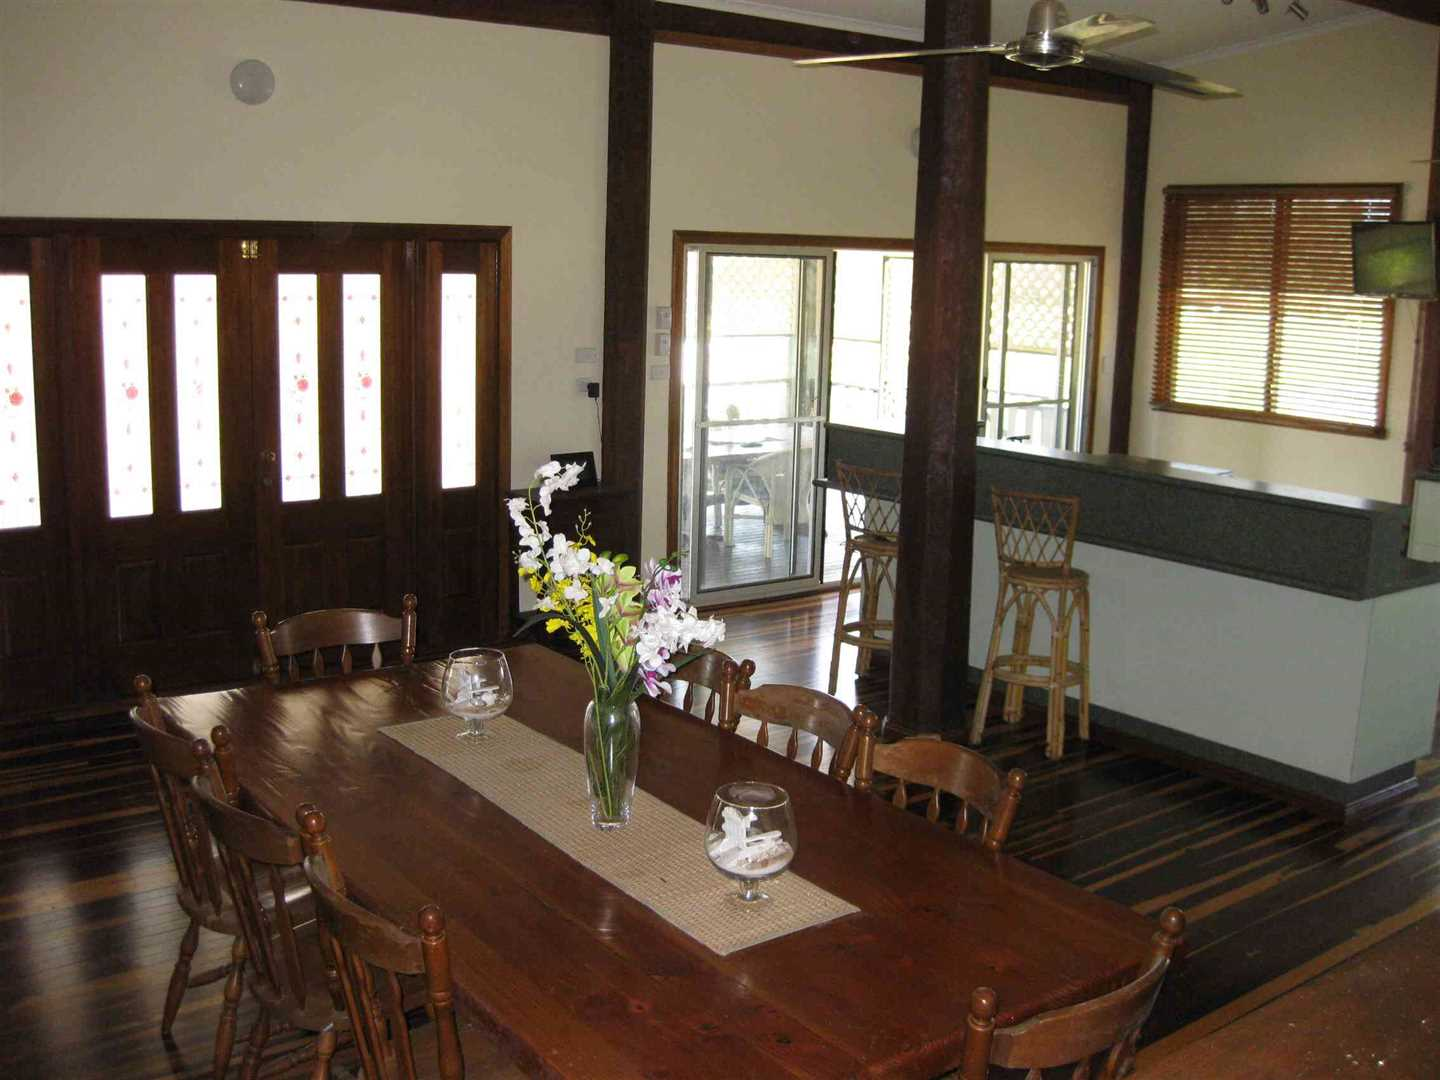 Inside view of part of home showing part of dining area with part of kitchen in the background